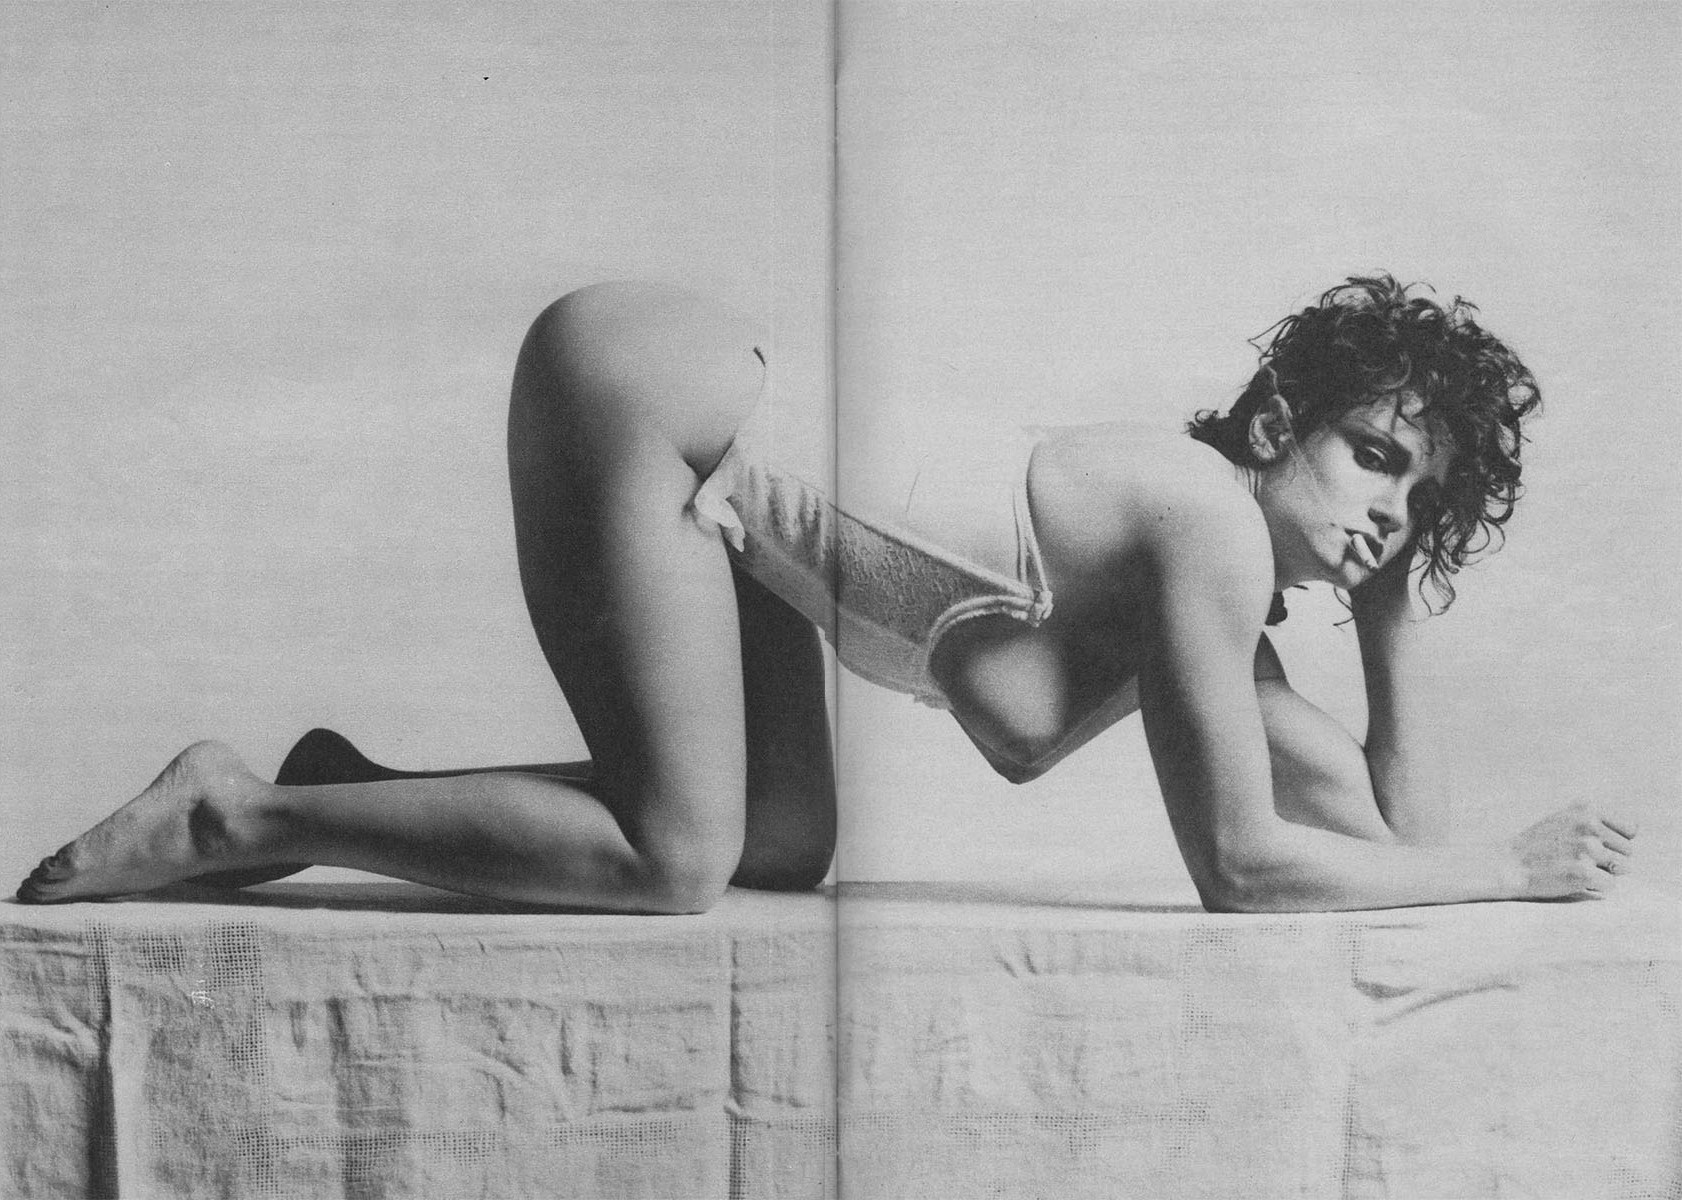 LISA LYON | 1981 | PHOTOGRAPHY ROBERT MAPPLETHORPE | MAX | APRIL 1985